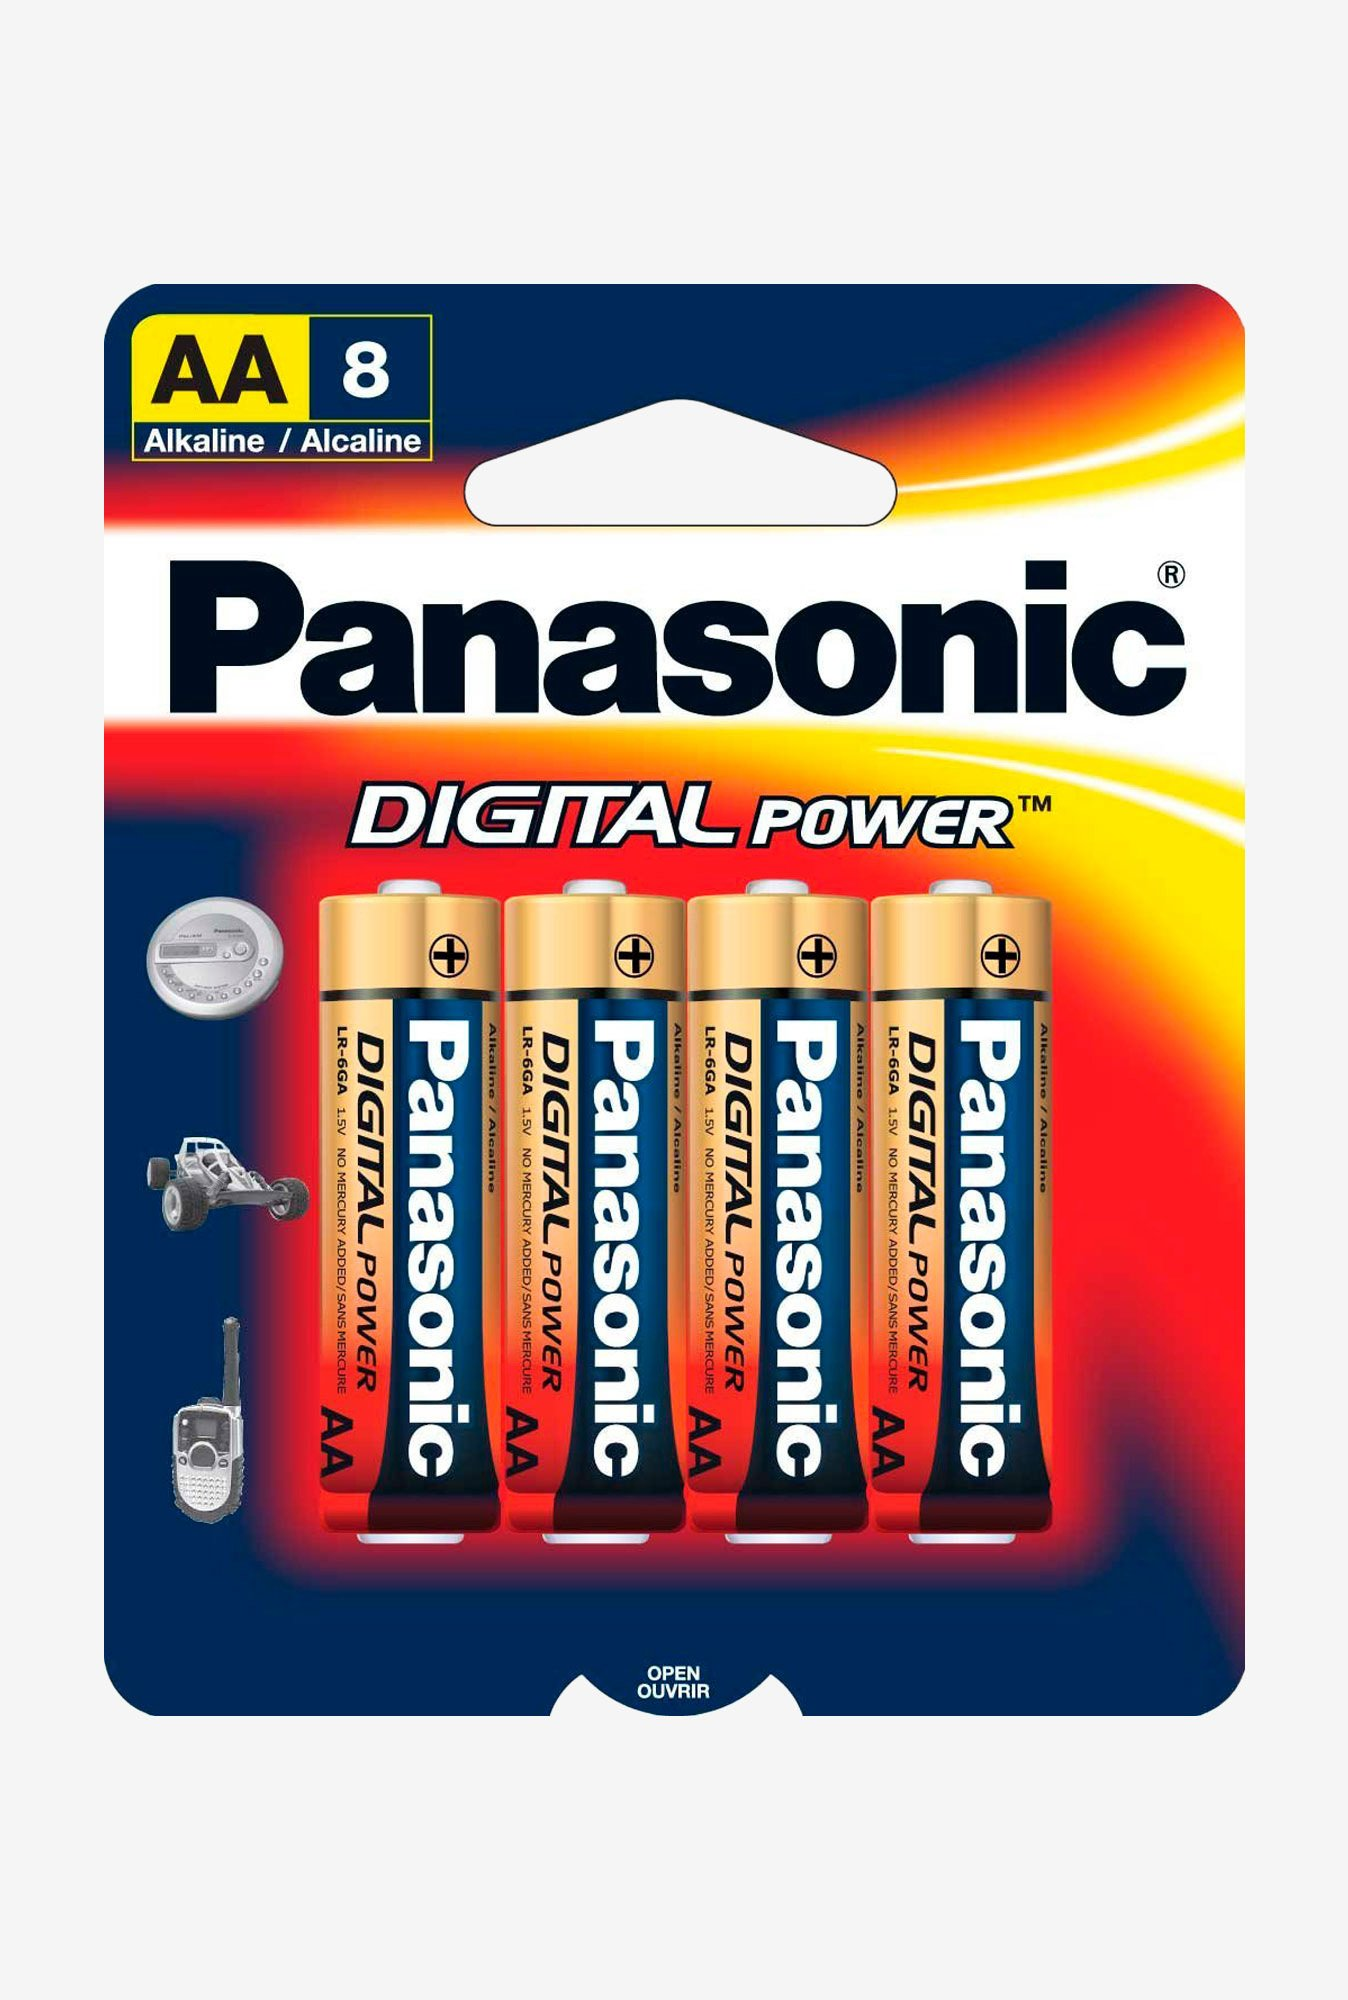 Panasonic Digital Power Lr-6Ga/8B Aa Alkaline Batteries - 8 Pack